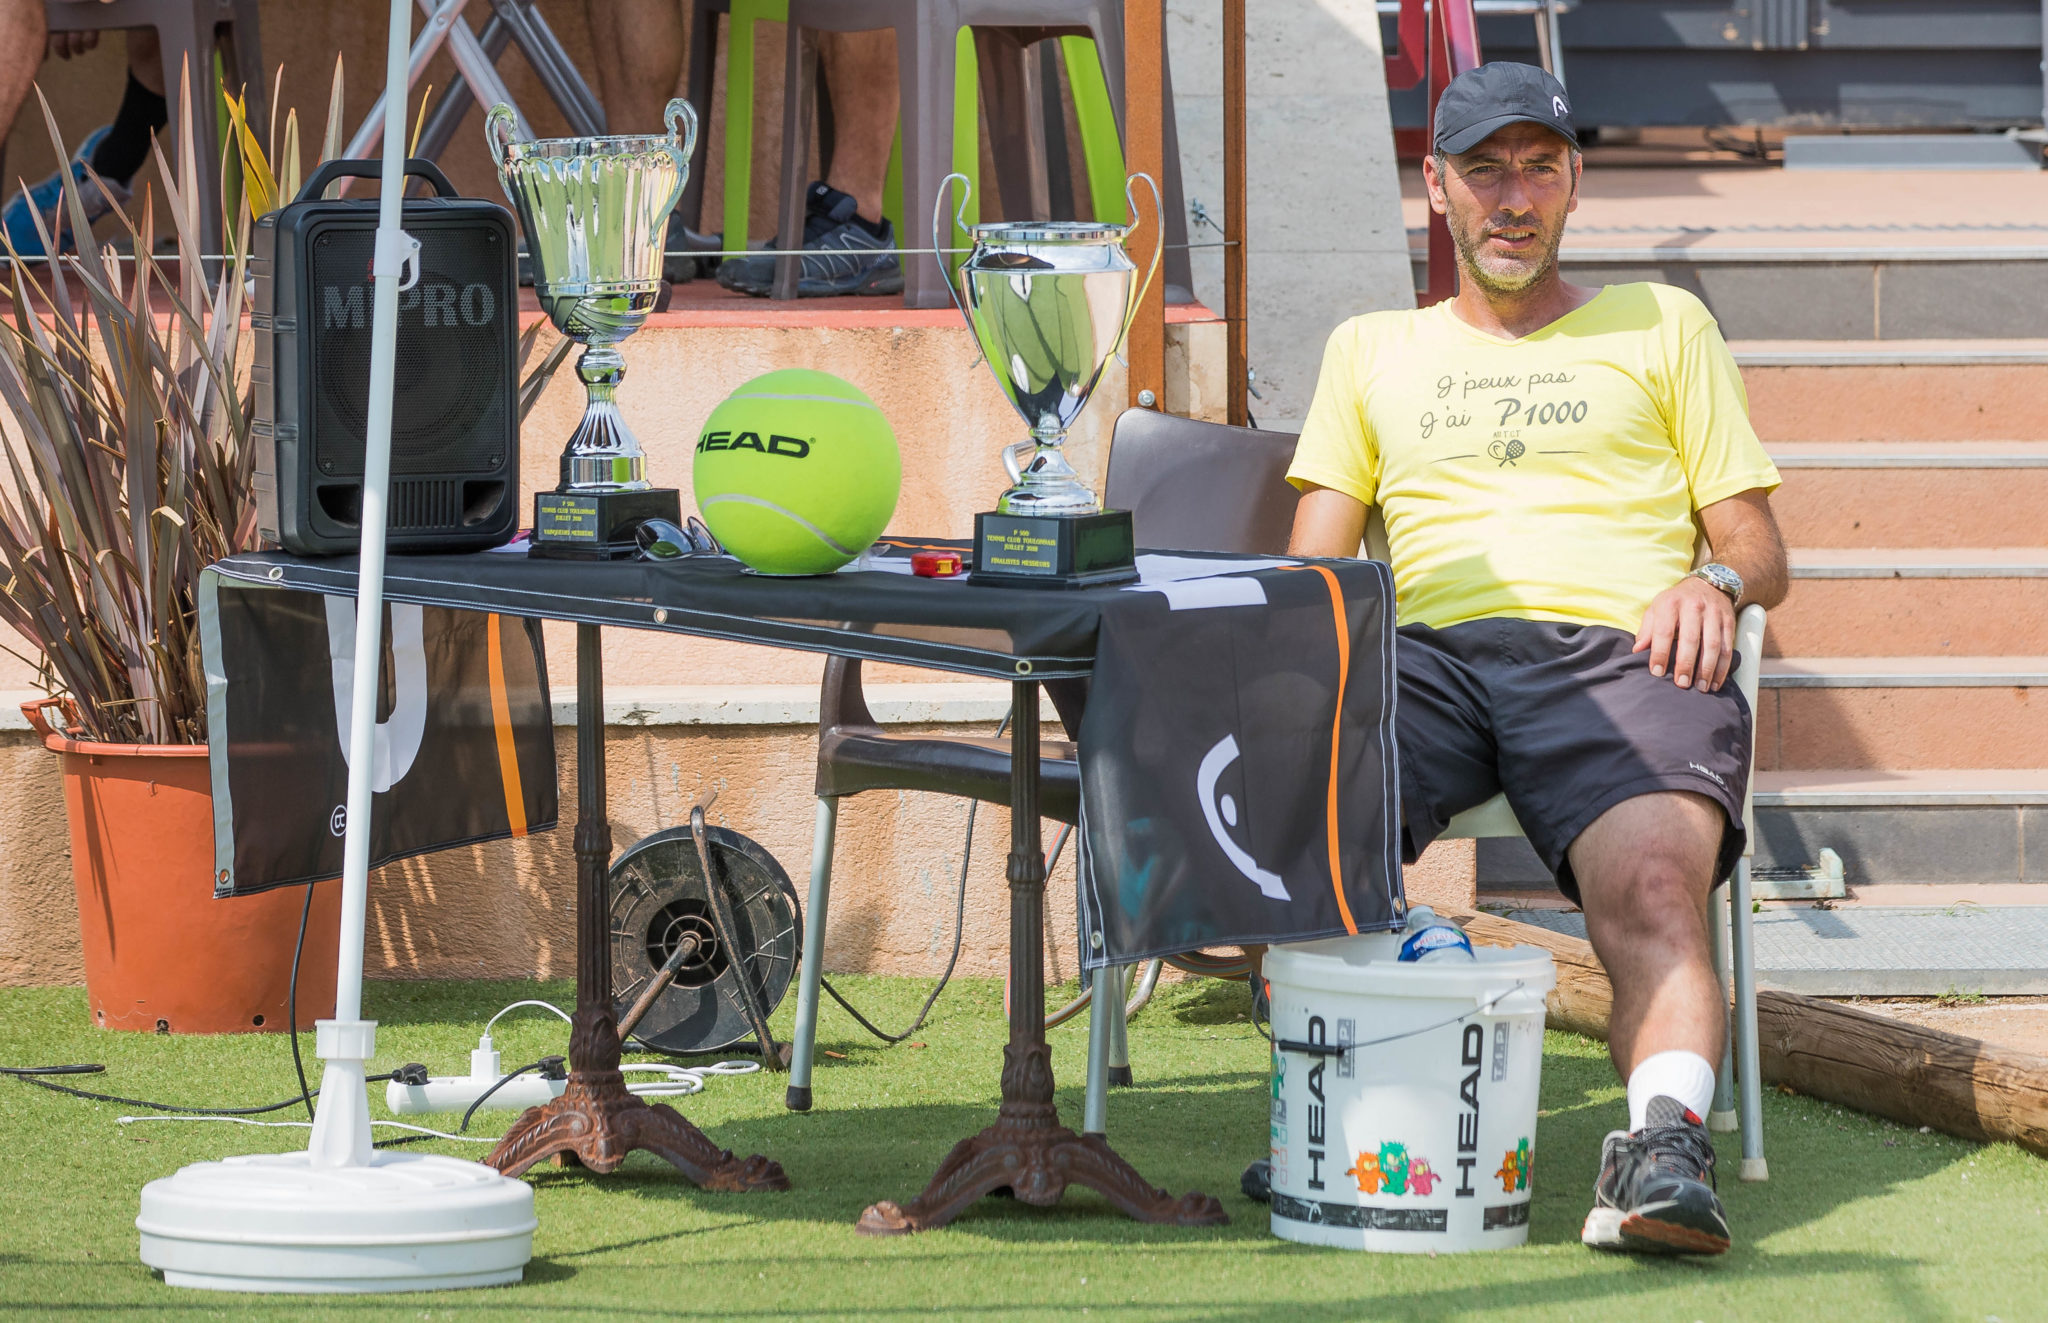 The Toulon Open under strong heat